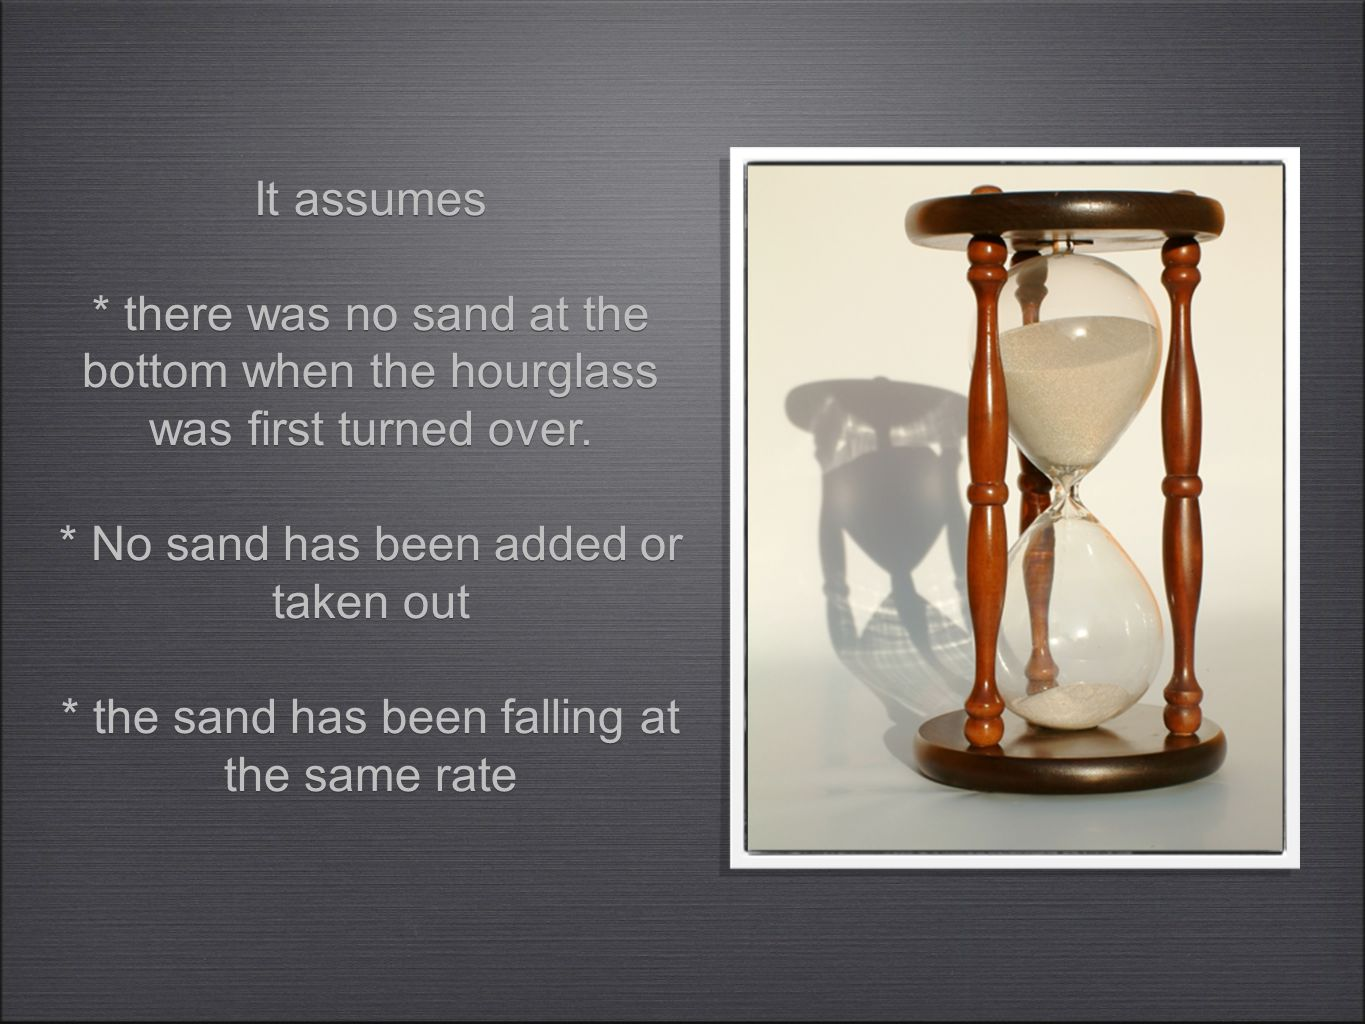 It assumes * there was no sand at the bottom when the hourglass was first turned over.